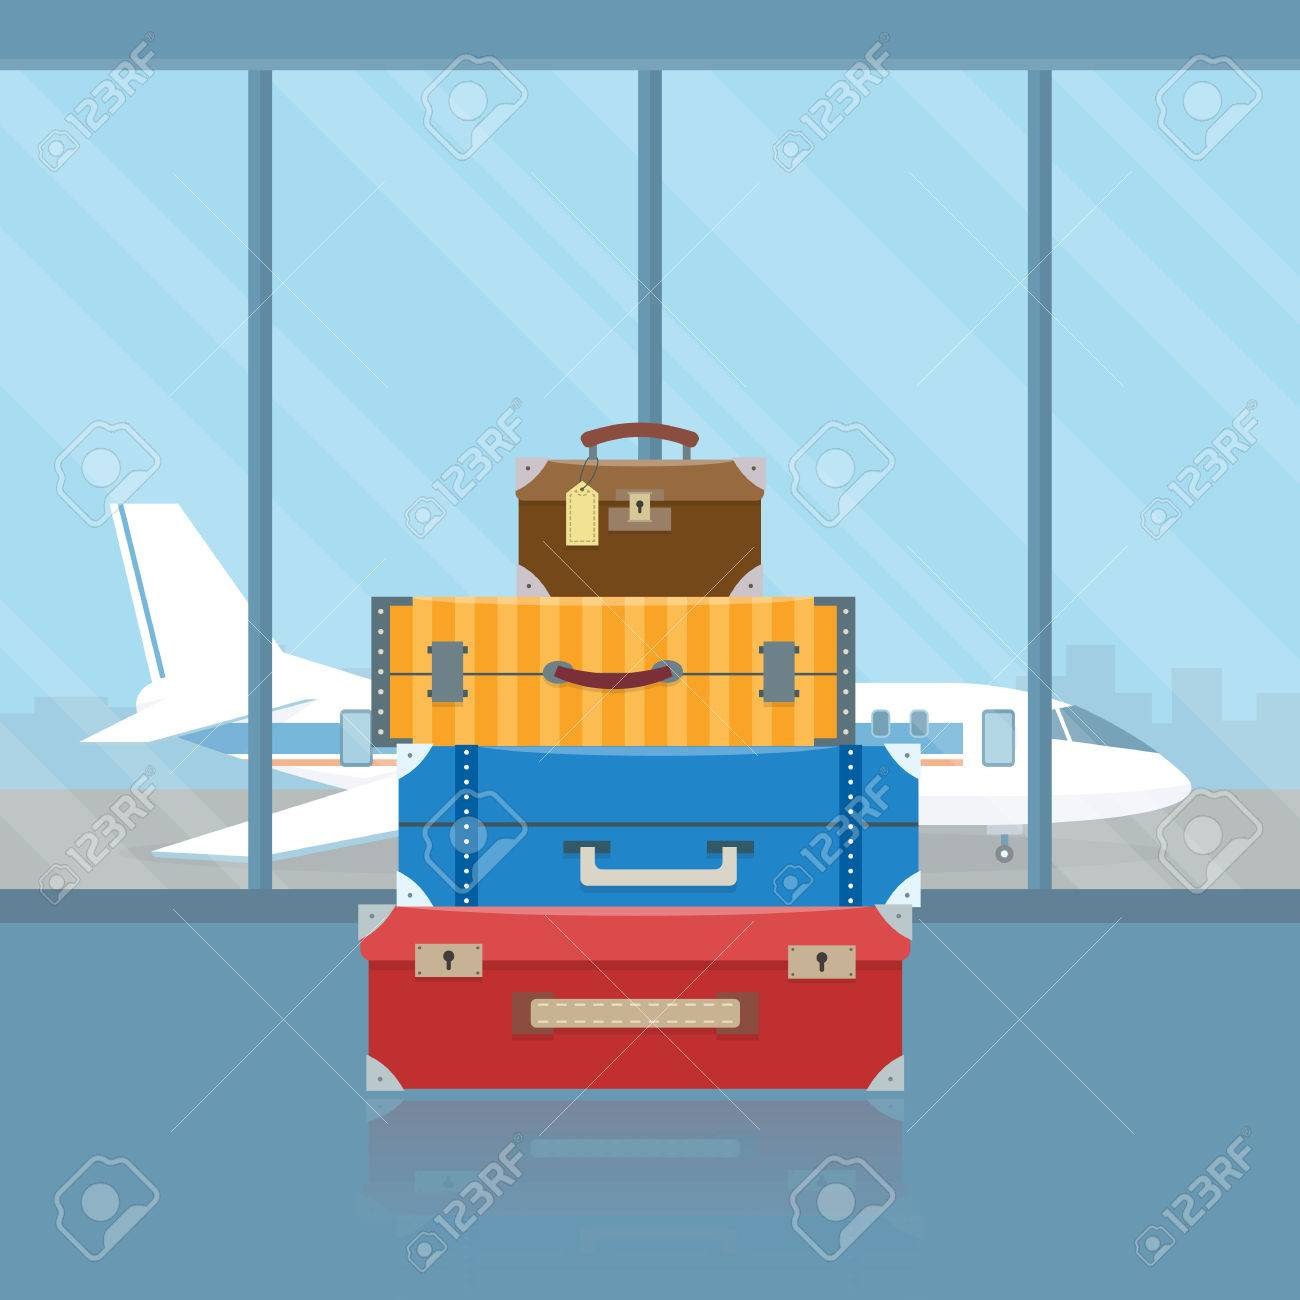 Baggage in airport. Flat style vector illustration. - 52617169